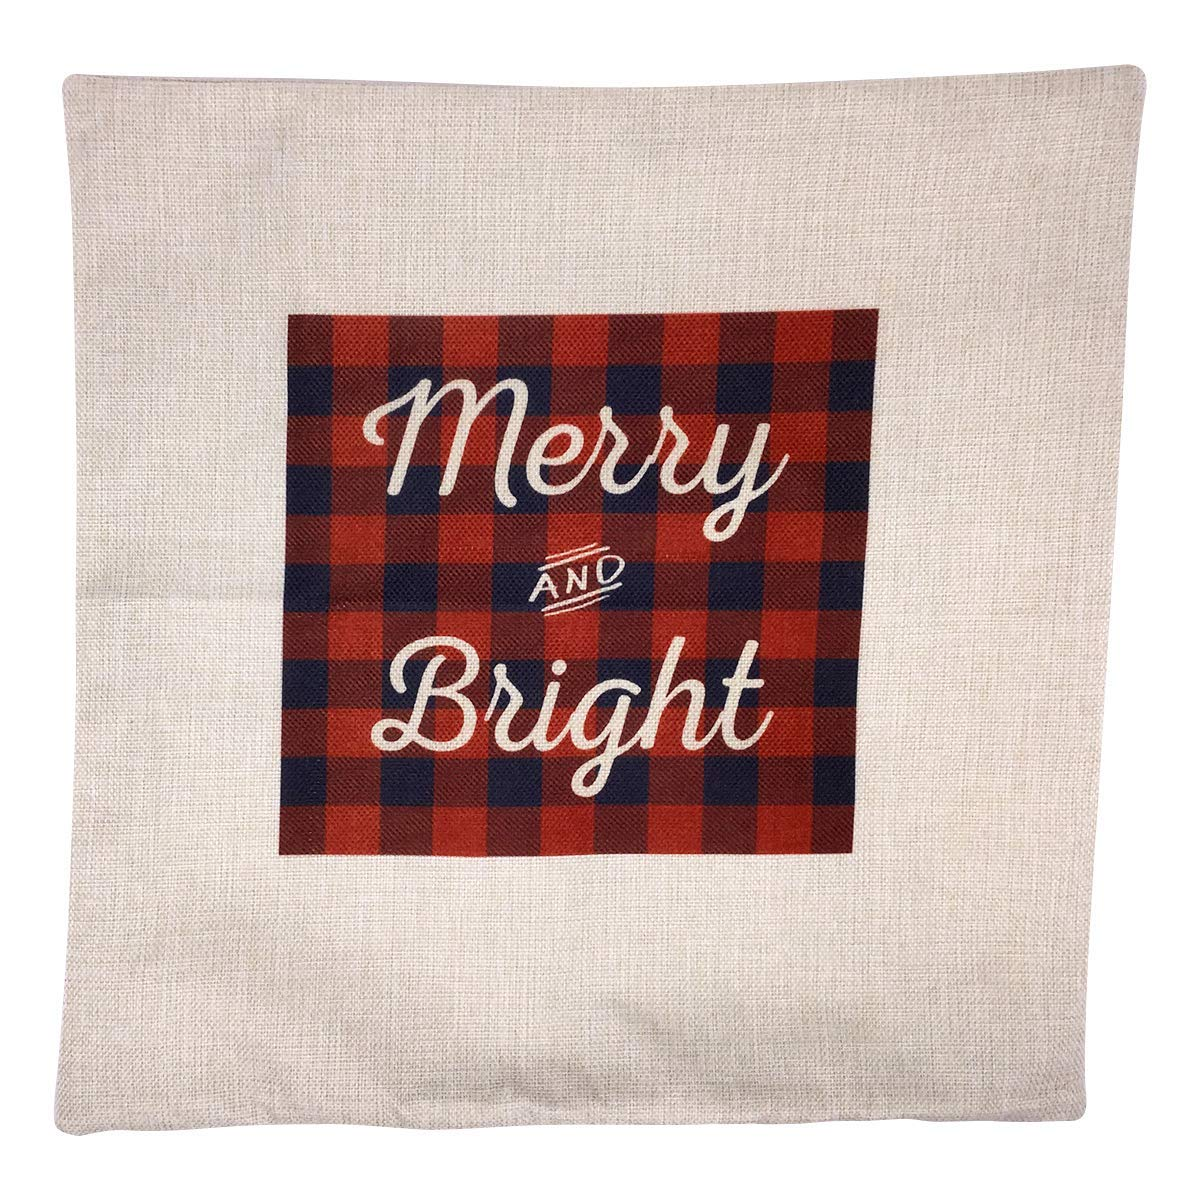 Arundeal 18 x 18 Inch Merry and Bright Red and Black Plaid Christmas Decorative Cotton Linen Square Throw Pillow Cases Cushion Cover